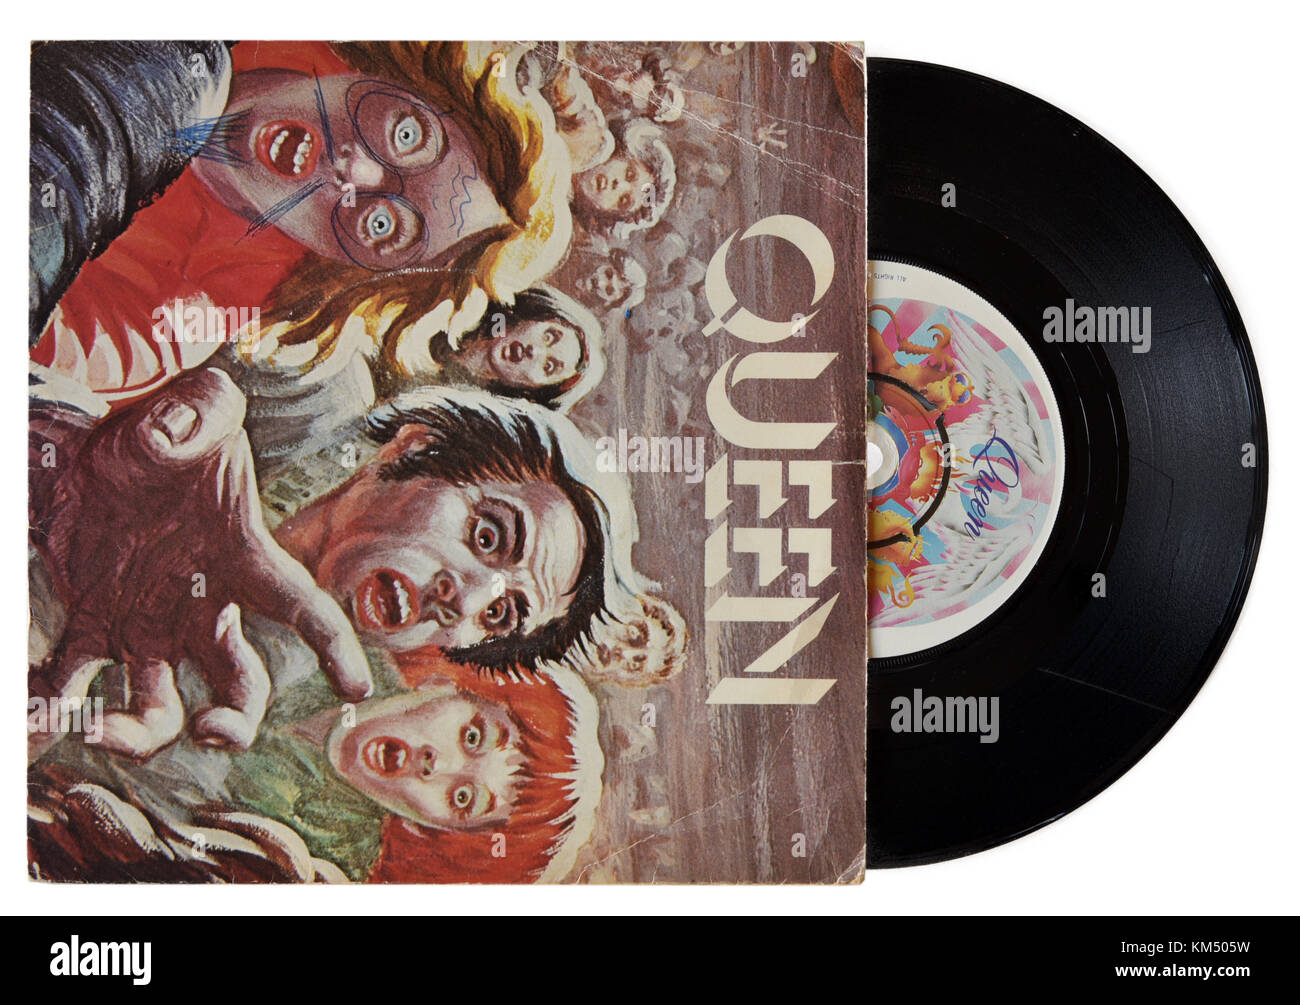 Queen Sheer Heart Attack seven inch single - Stock Image